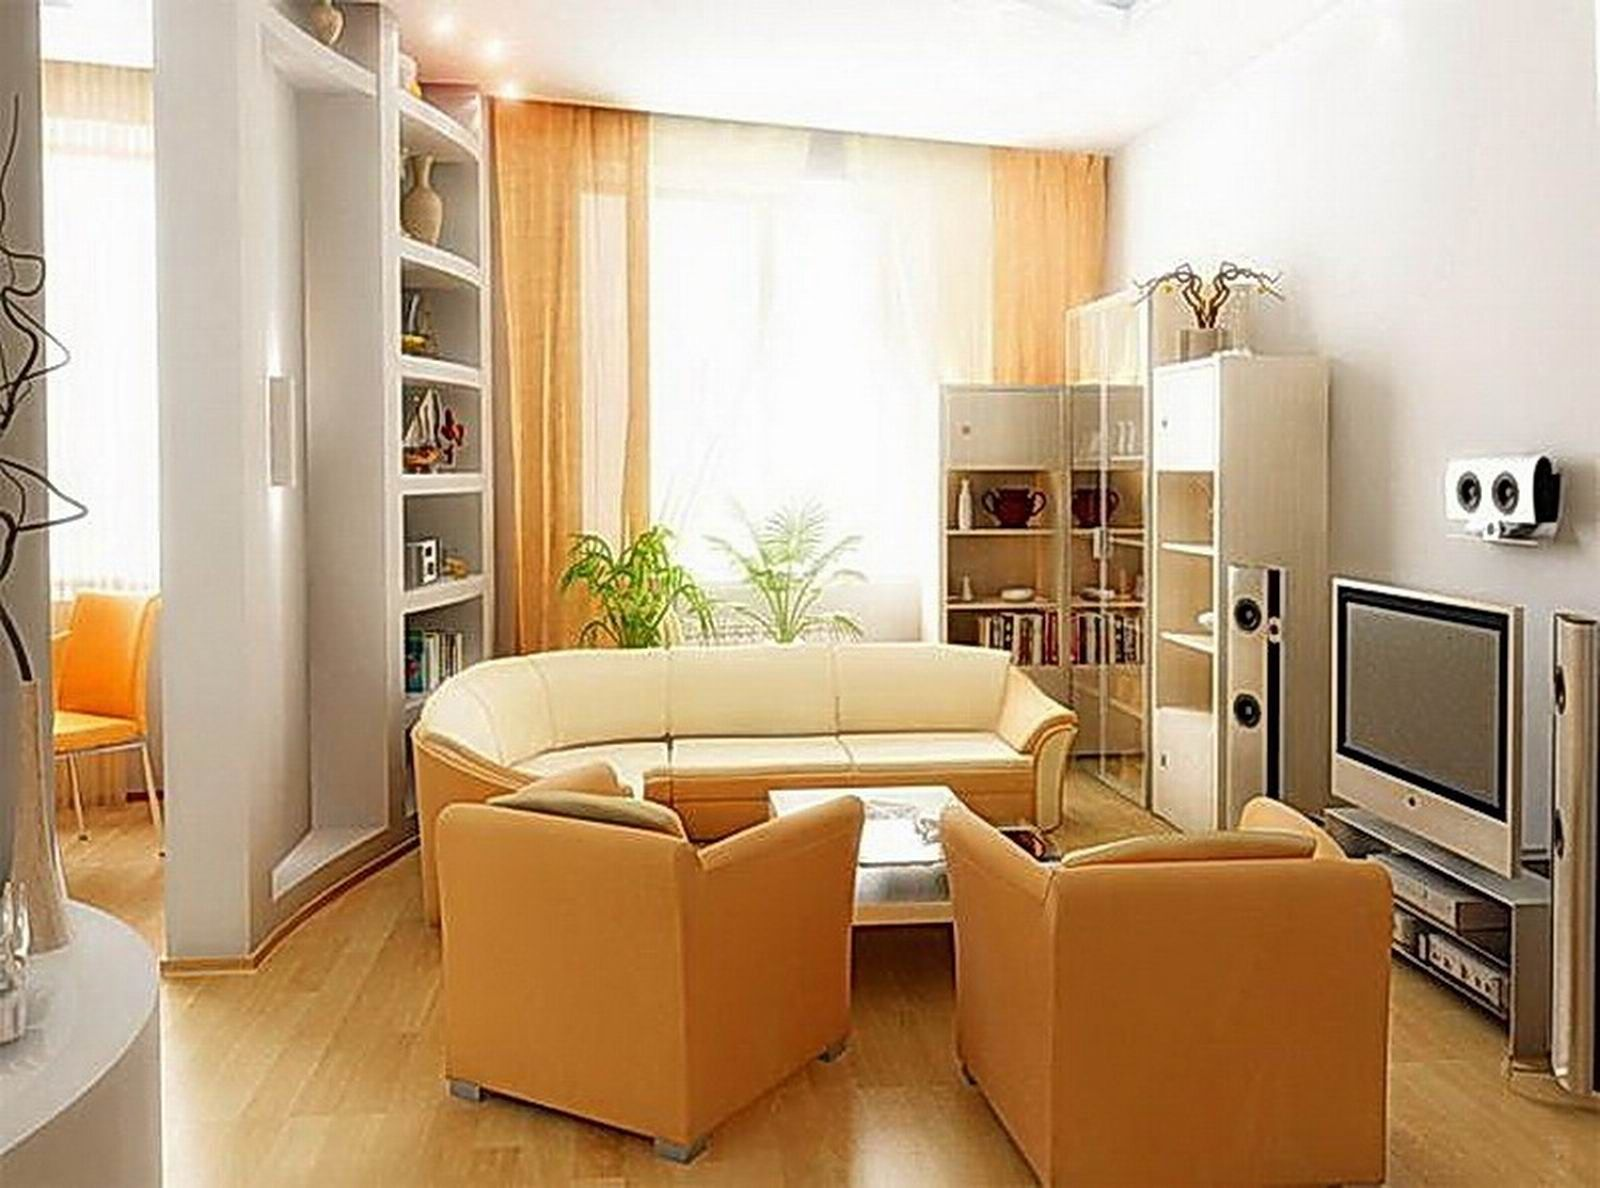 living room furniture arrangements with tv leather sofa pictures arrangement decorating ideas small layout fireplace apartment for guys rooms stupendous design